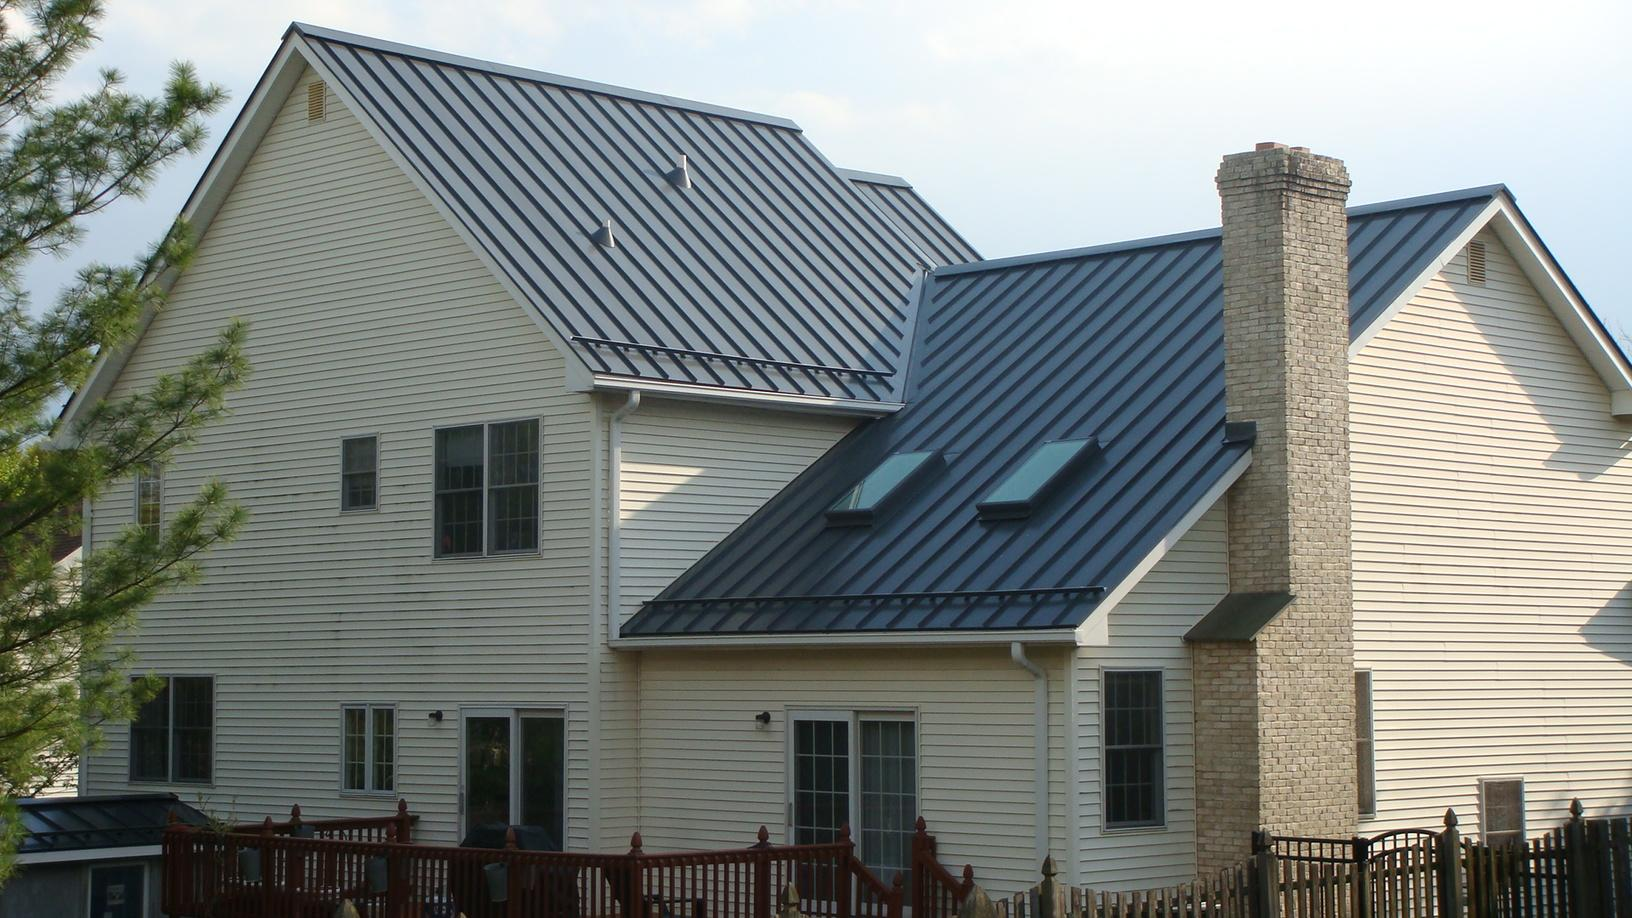 Custom Grey Standing Seam Metal Roof With Snow Guards